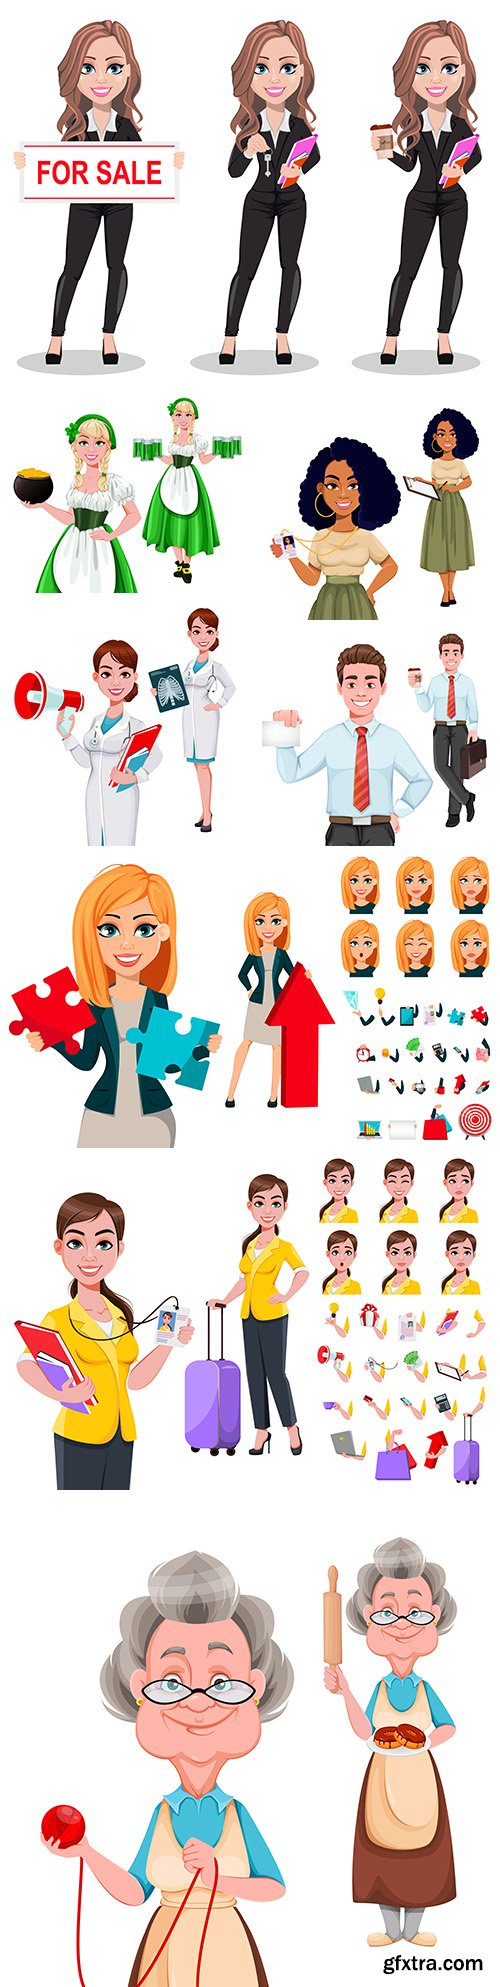 People cartoon character illustrating different professions